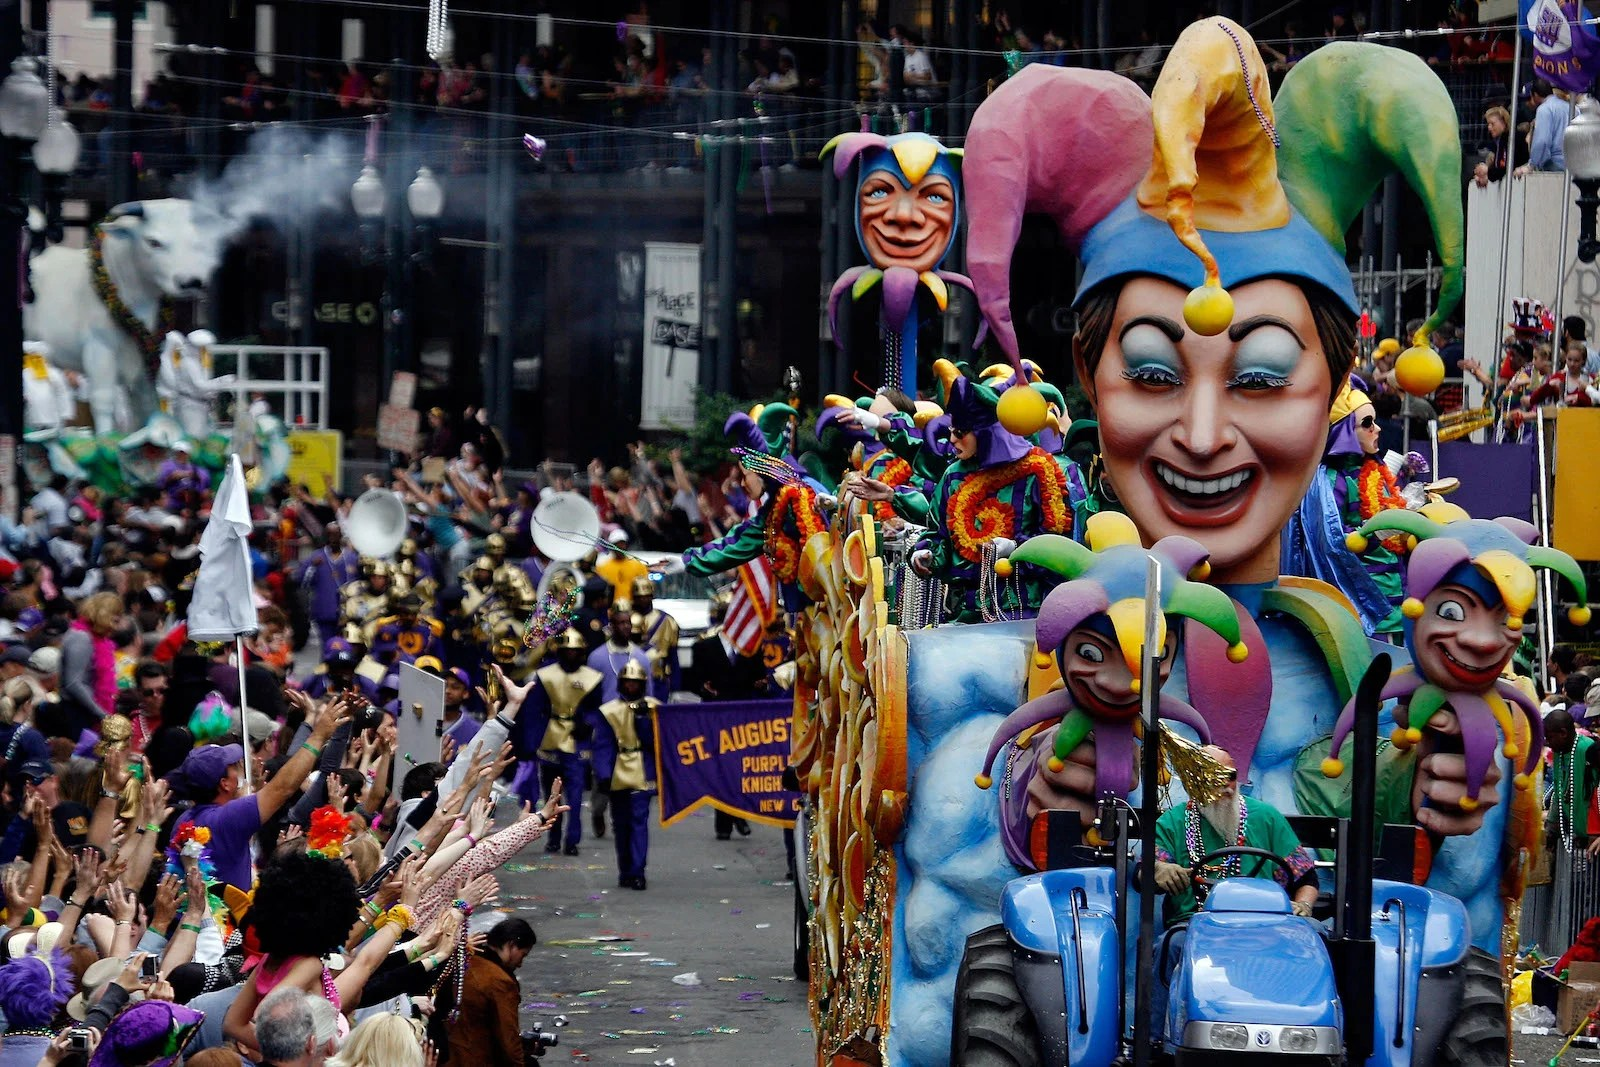 A beginner's guide to celebrating Mardi Gras in New Orleans